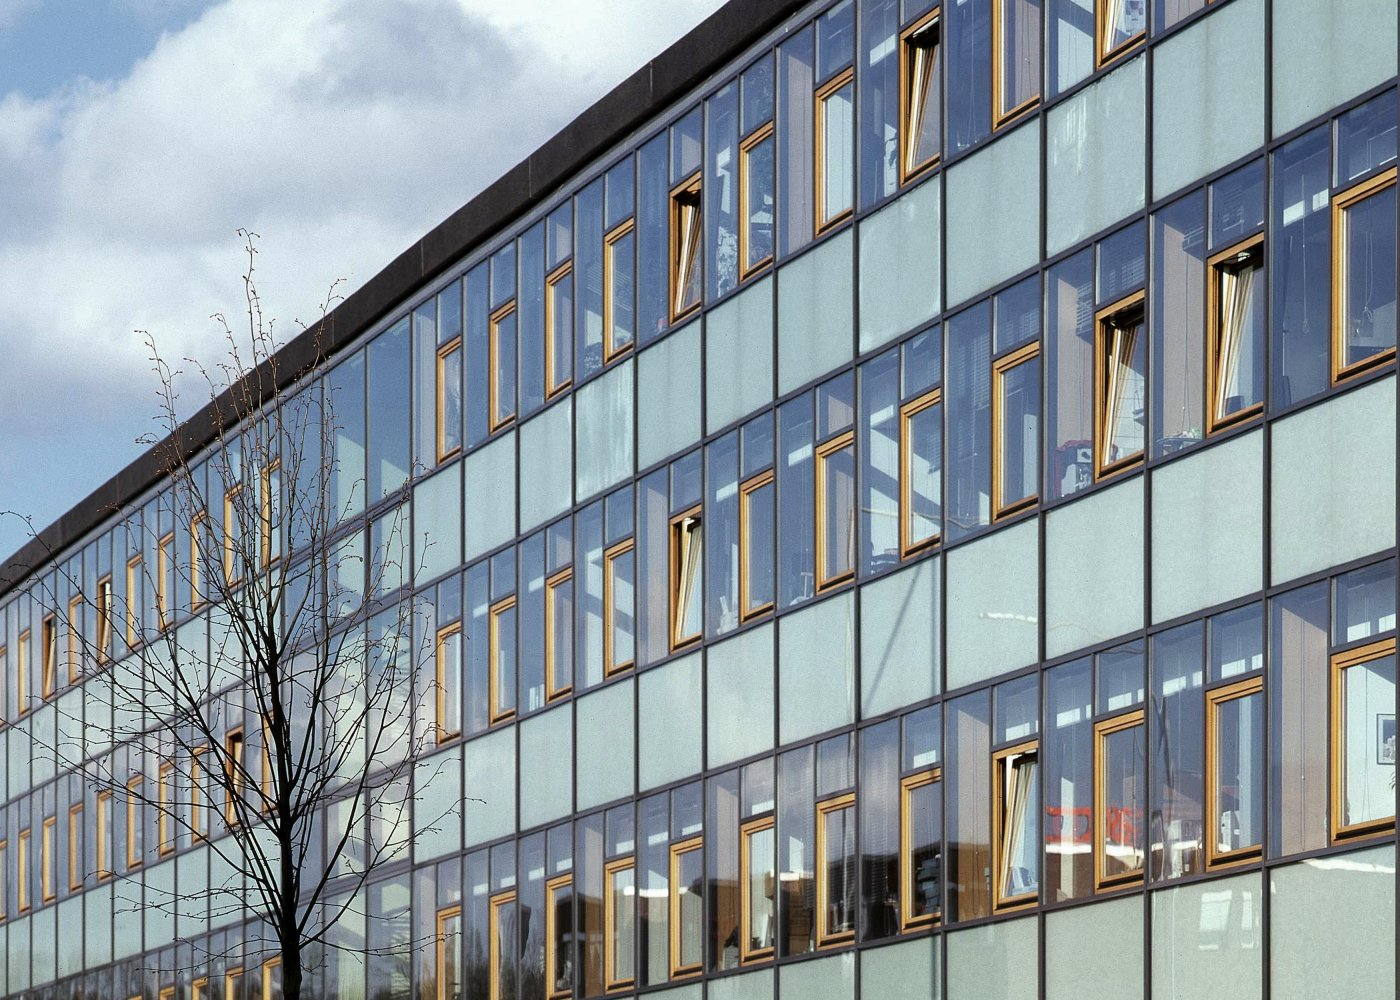 hks | architekten, Logistikzentrum Arxes, Aachen